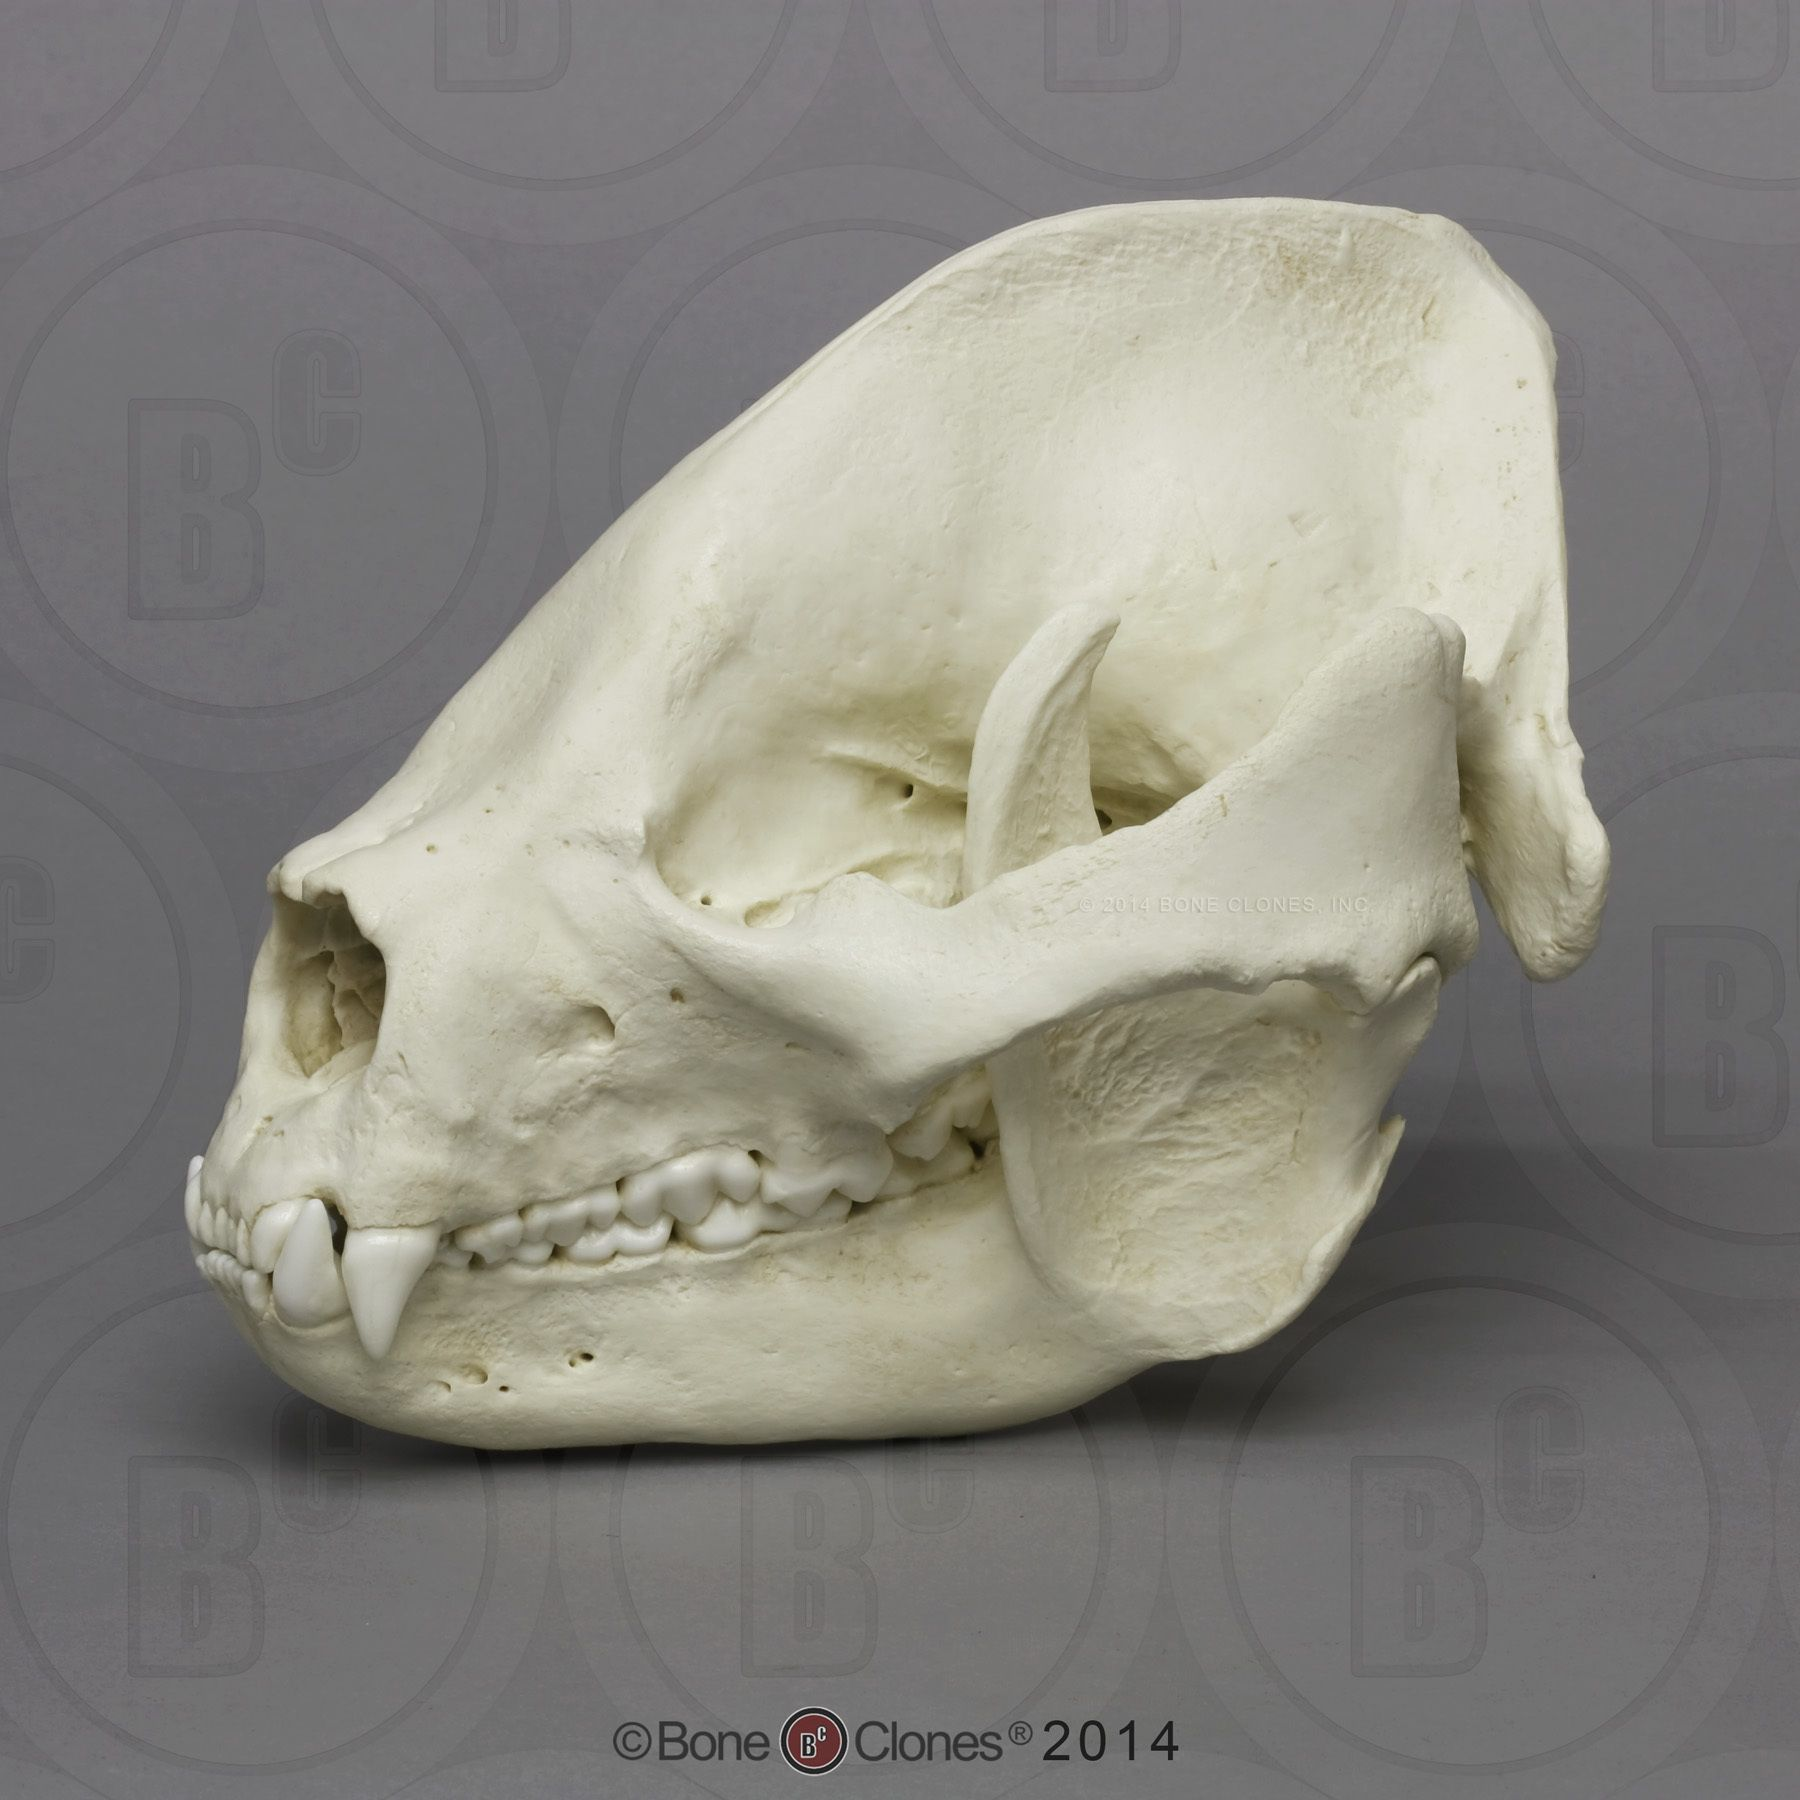 Giant Panda Skull, Adult - Bone Clones, Inc. - Osteological ...